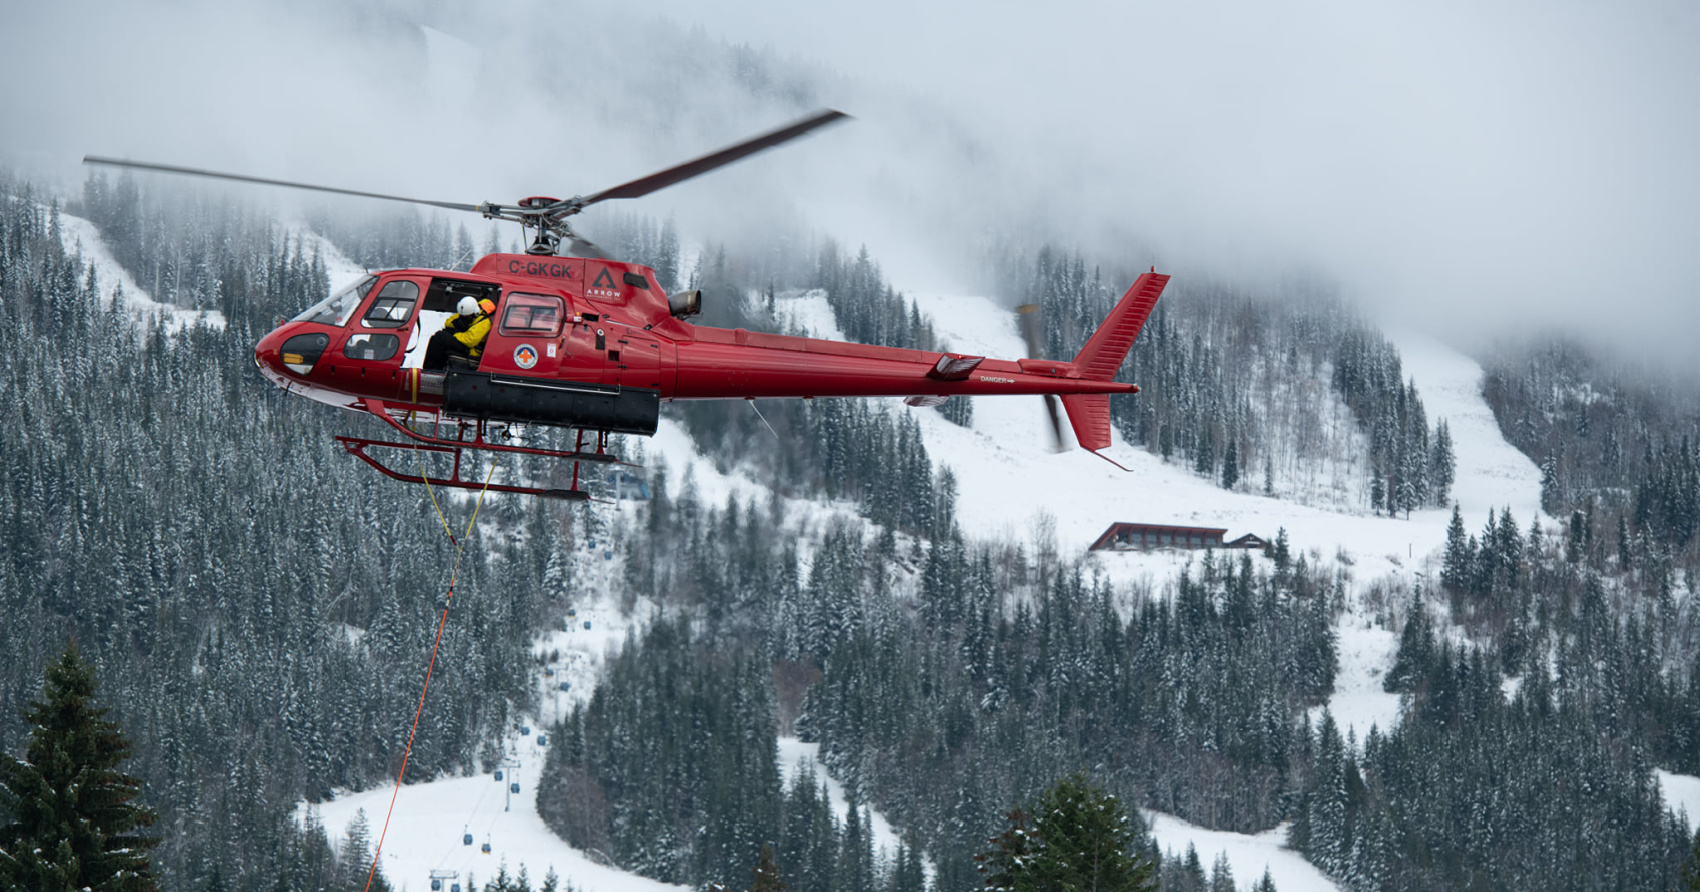 Snowmobile accident claims the life of Okanagan man